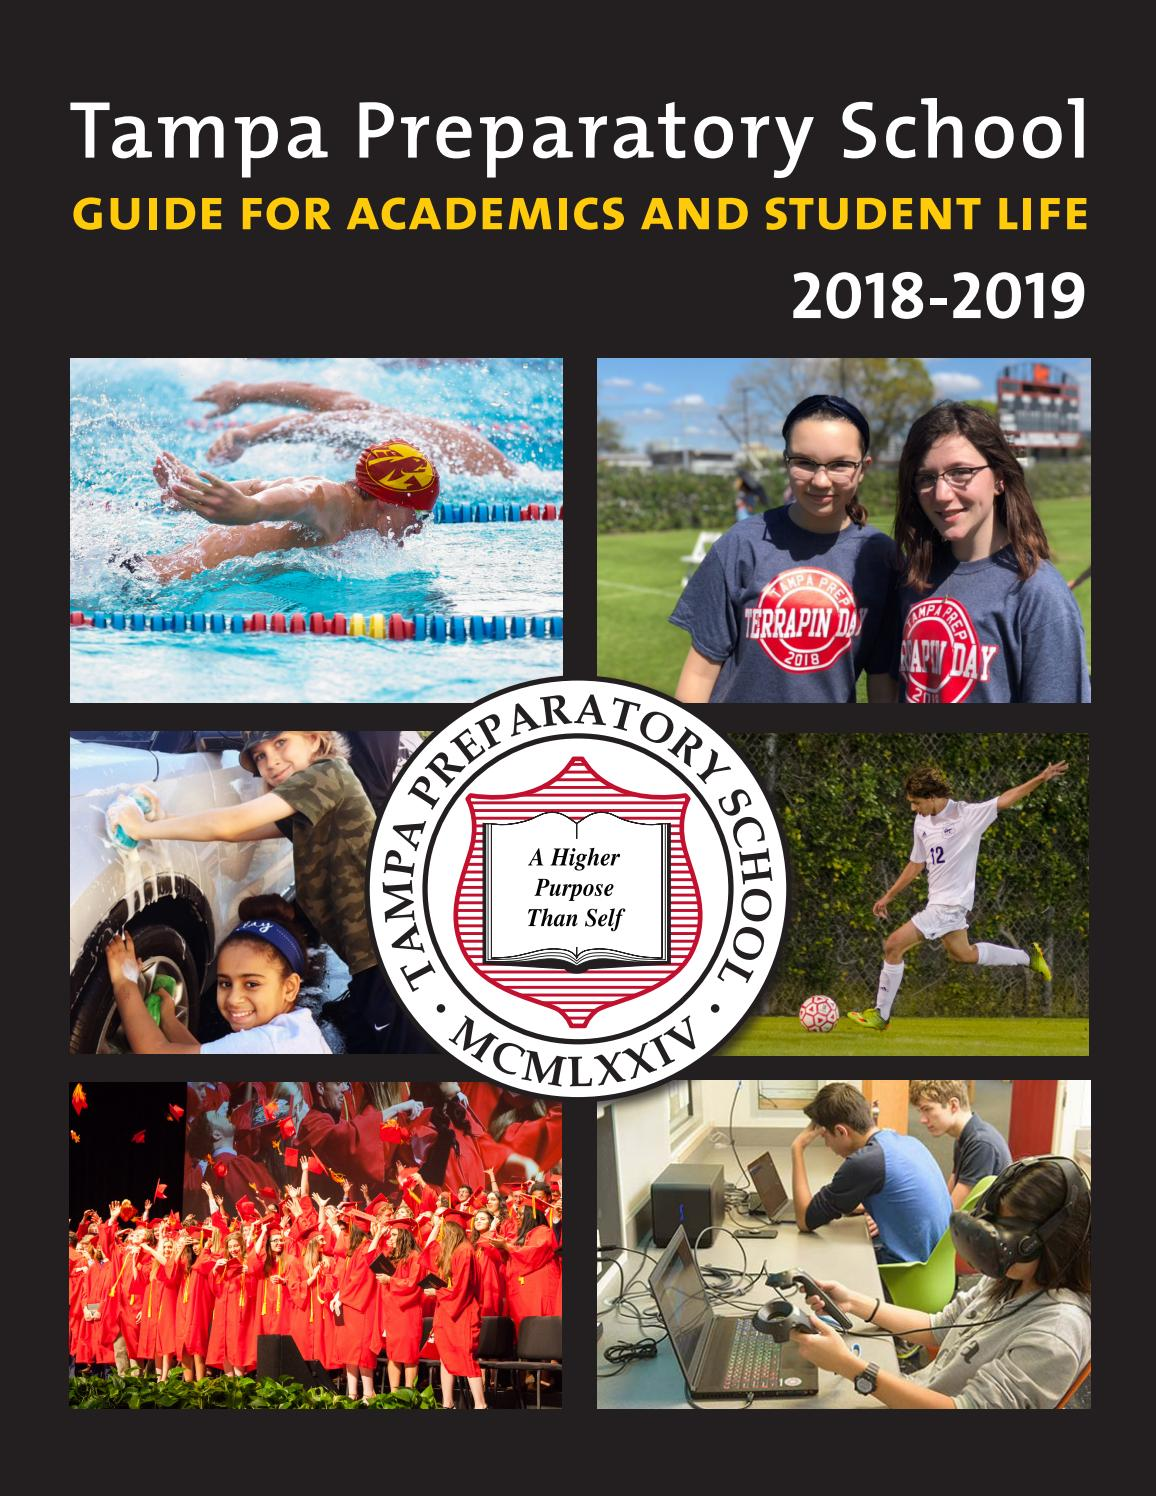 2018-19 Guide to Academics and Student Life by Tampa Preparatory